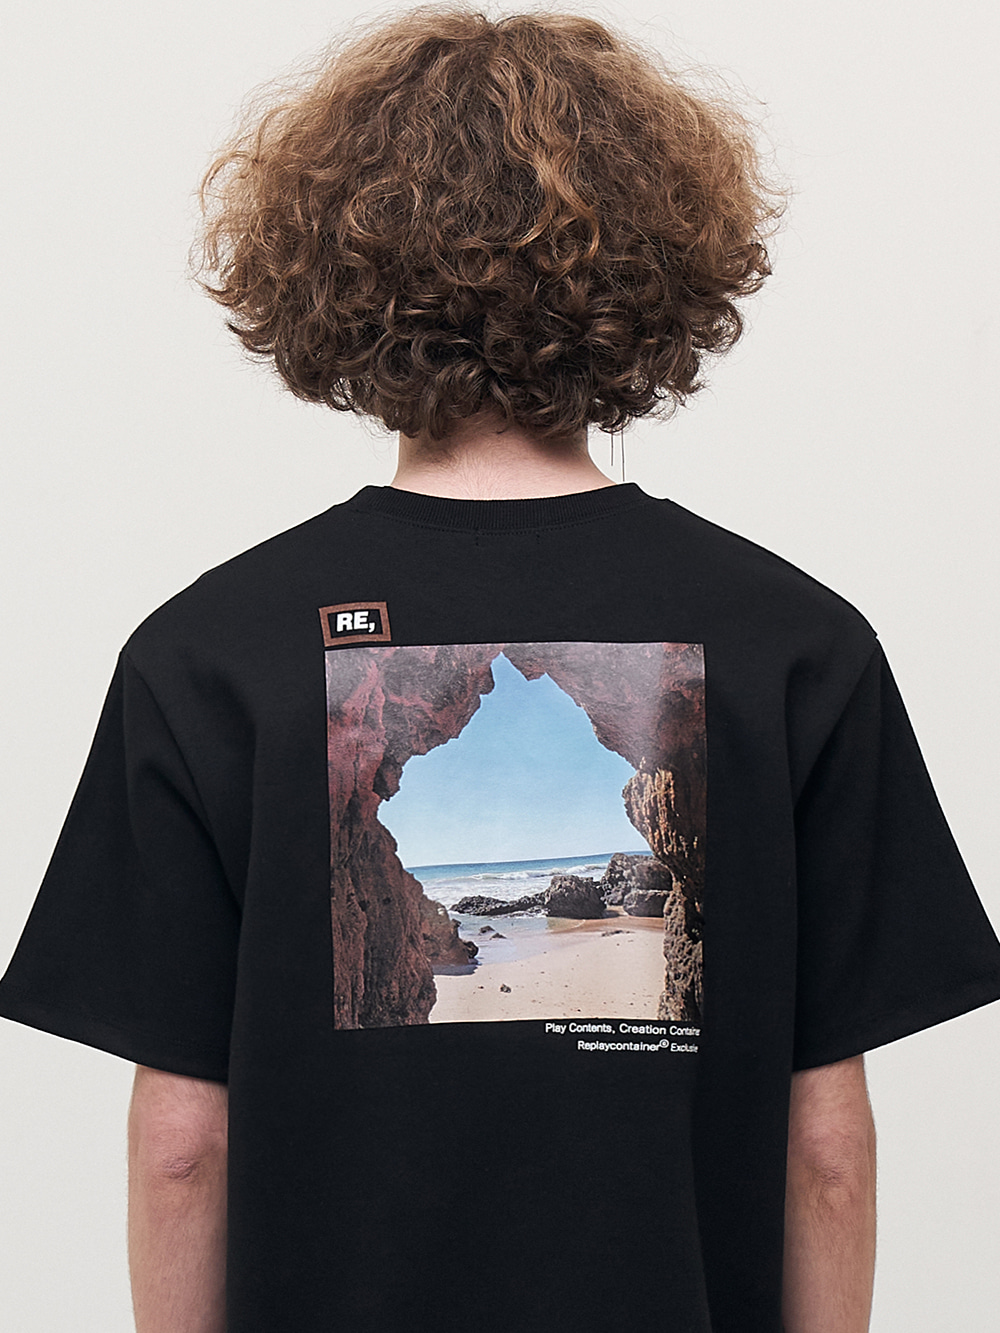 RE square black campaign half tee (cave)